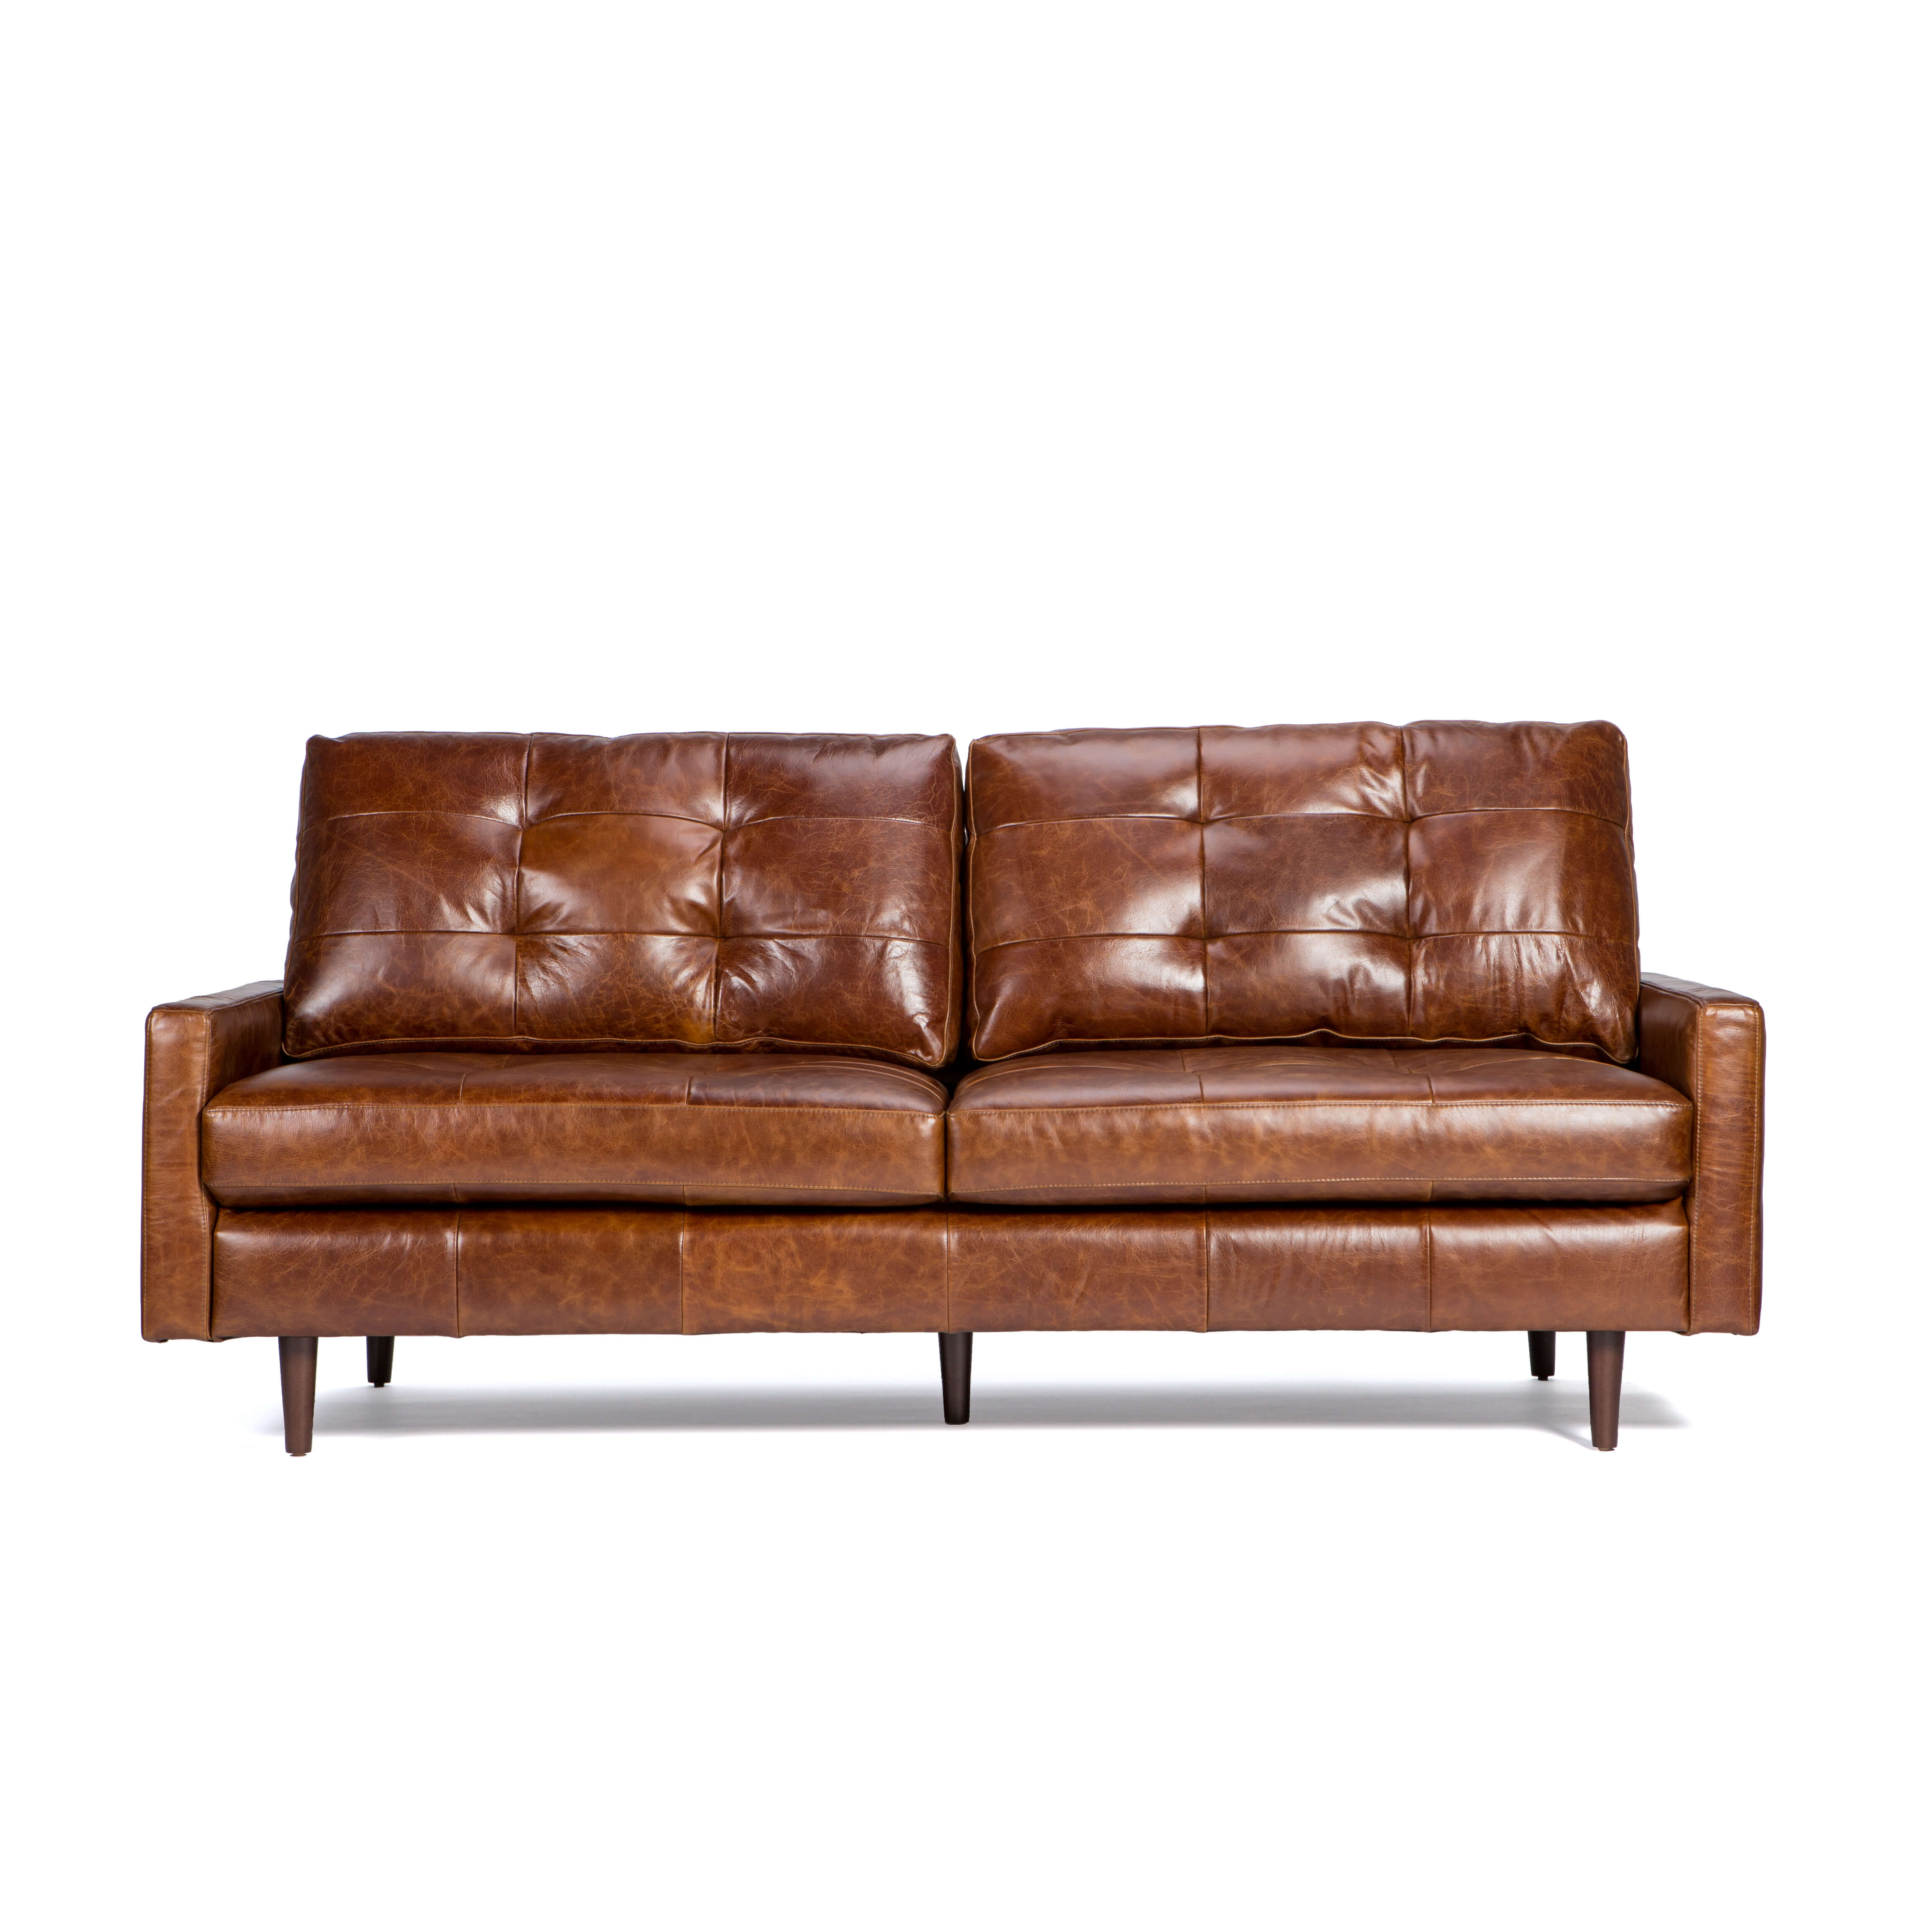 Leather Sofa With Tufted Back Cushion – Andrew – Zillo + Hutch Inside Andrew Leather Sofa Chairs (View 3 of 25)